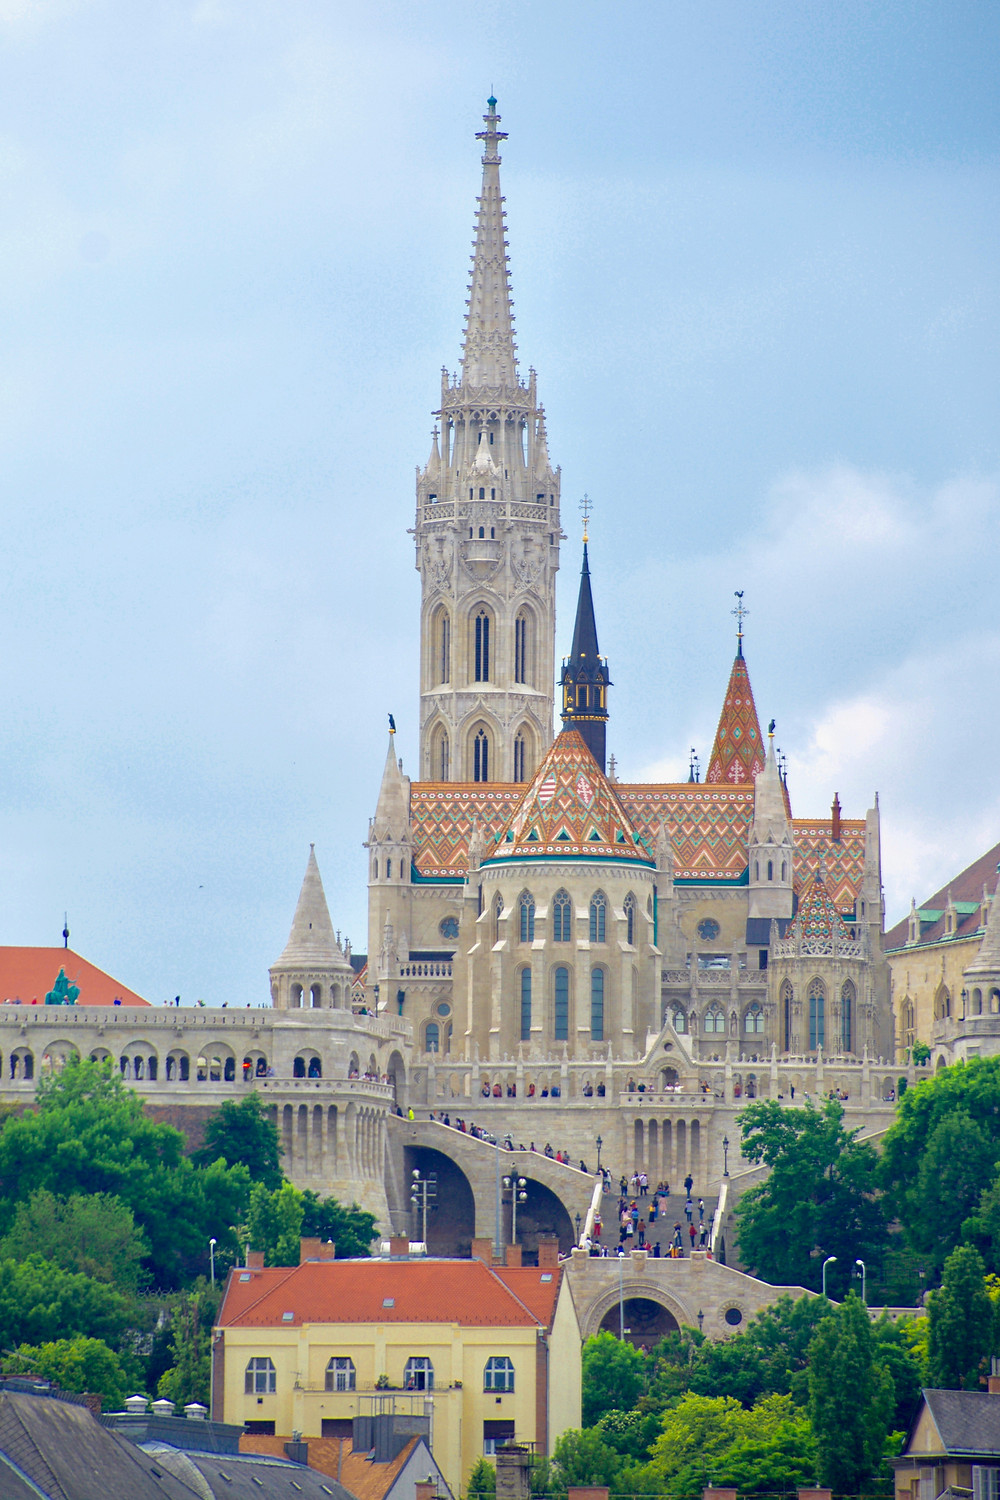 The colorful orange spires of the Matthias Church by the Fisherman's Bastion in Budapest, Hungary surrounded by greenery under a bright blue sky